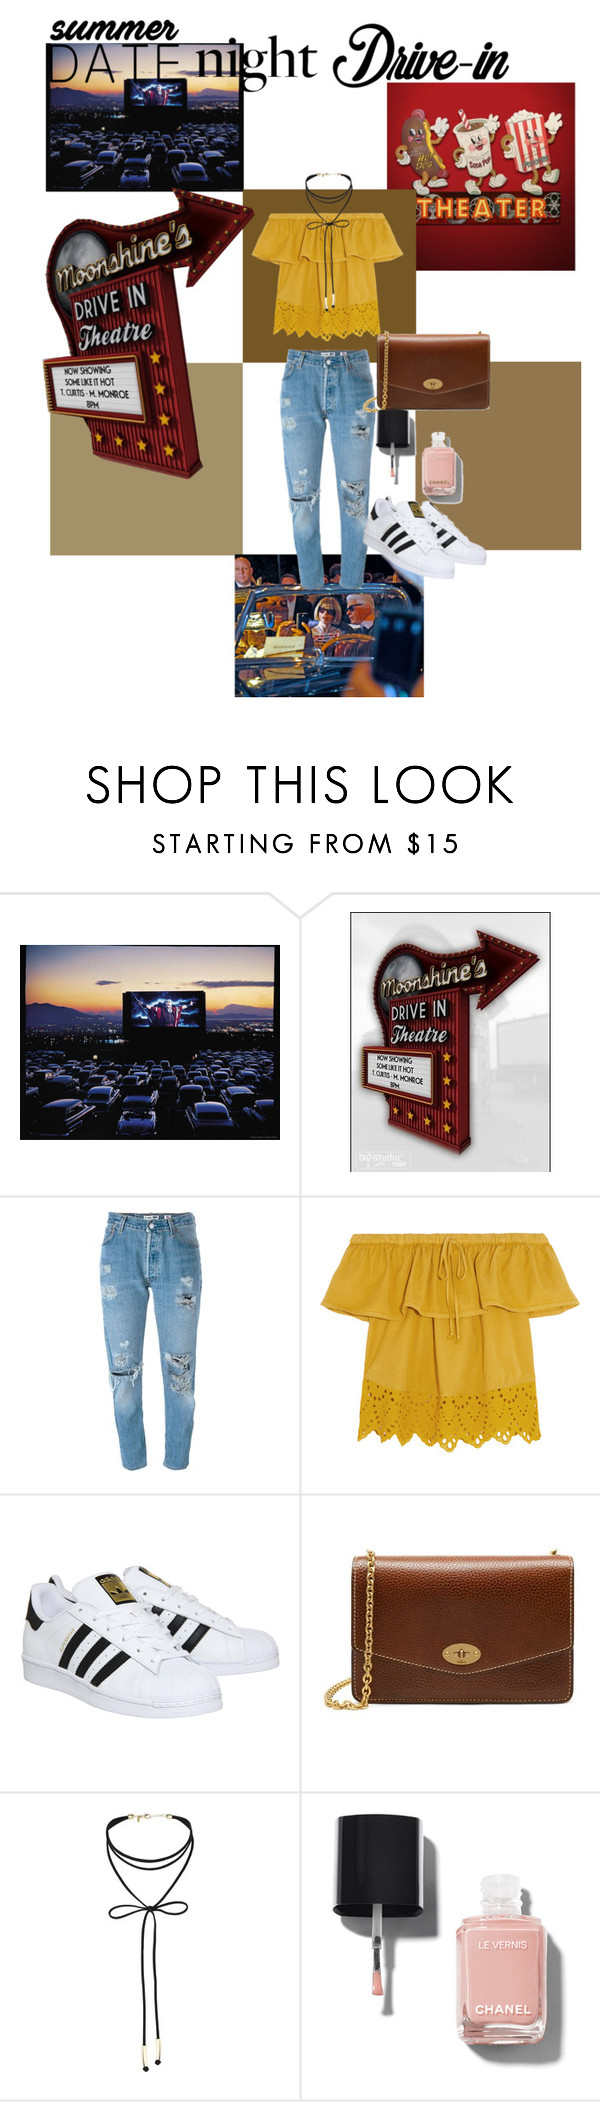 """""""My kind of date night"""" by sorahya ❤ liked on Polyvore featuring Levi's, Madewell, adidas, Mulberry, Miss Selfridge, Chanel, DateNight, drivein and summerdate"""